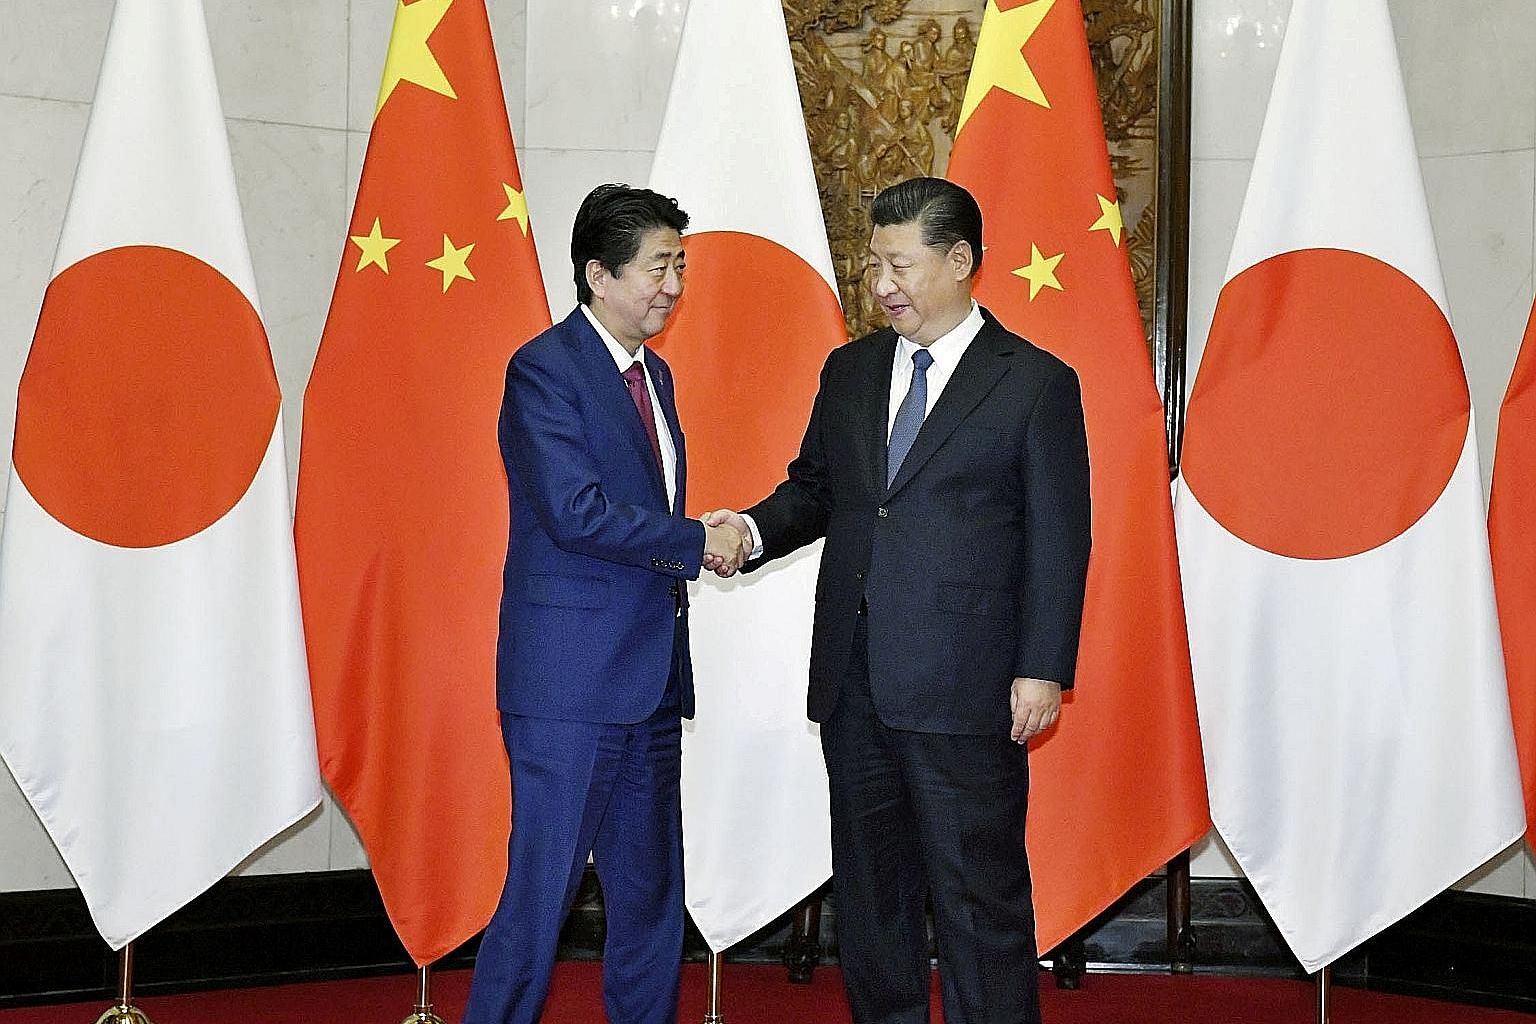 """Japanese Prime Minister Shinzo Abe (left) and Chinese President Xi Jinping during a meeting in Beijing on Oct 26. Mr Abe's """"cooperate but compete"""" policy rides on the cross-currents of the present tensions; its success is similarly subject to the shi"""